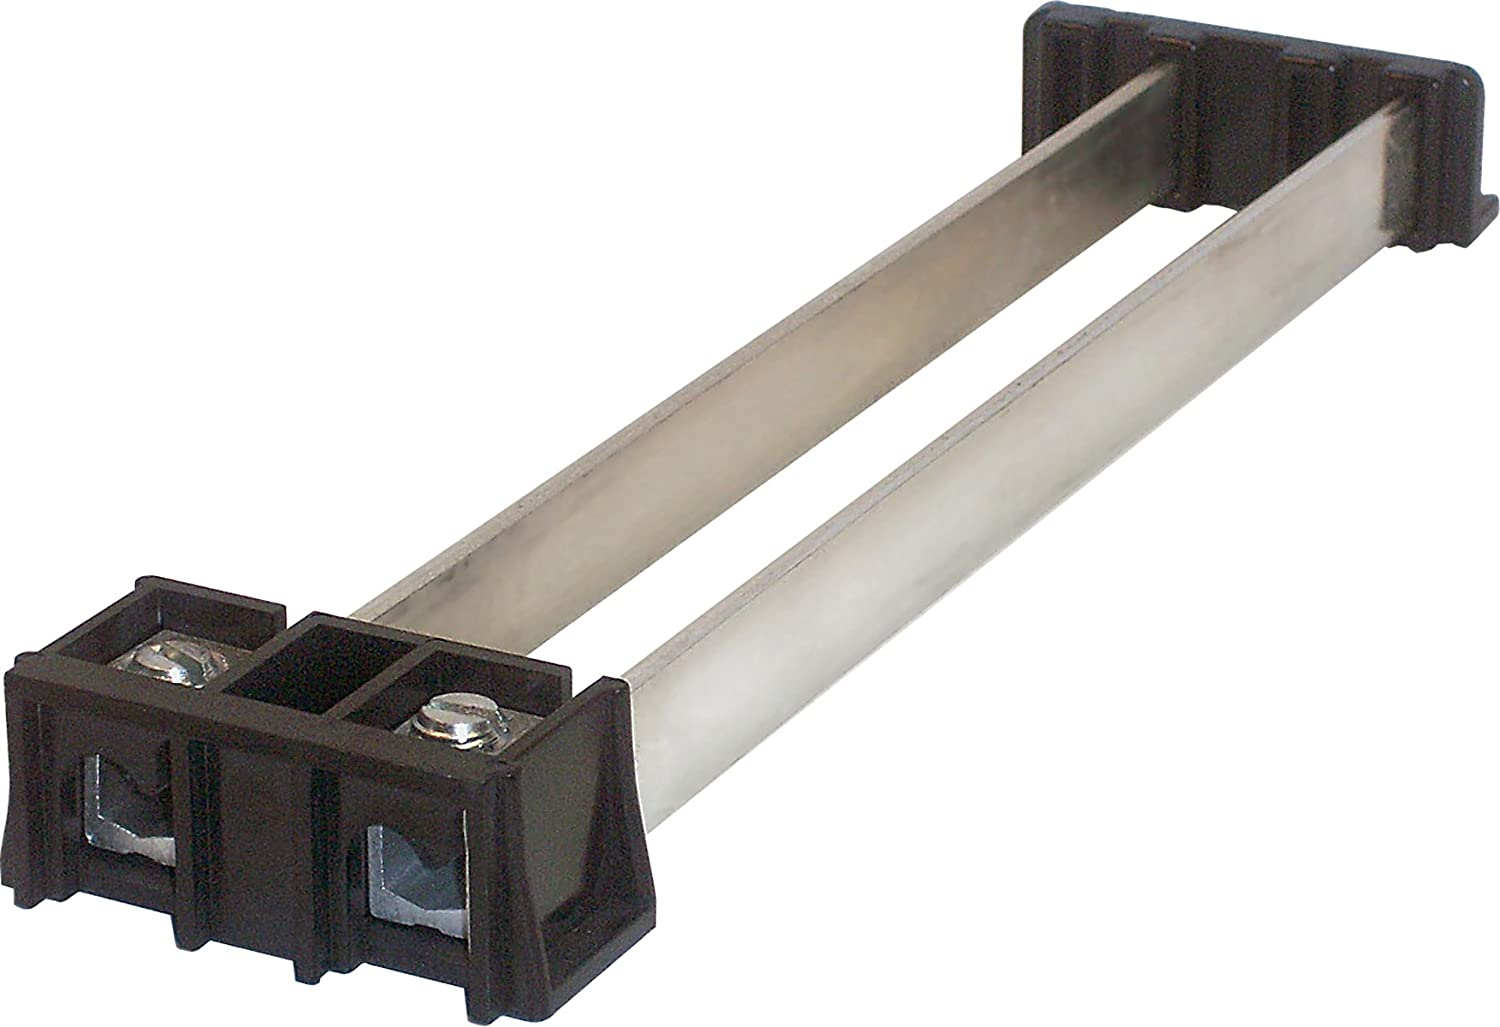 NEW Zinsco buss bar set 100 amp rated 11 inches long GTE Sylvania Challenger.